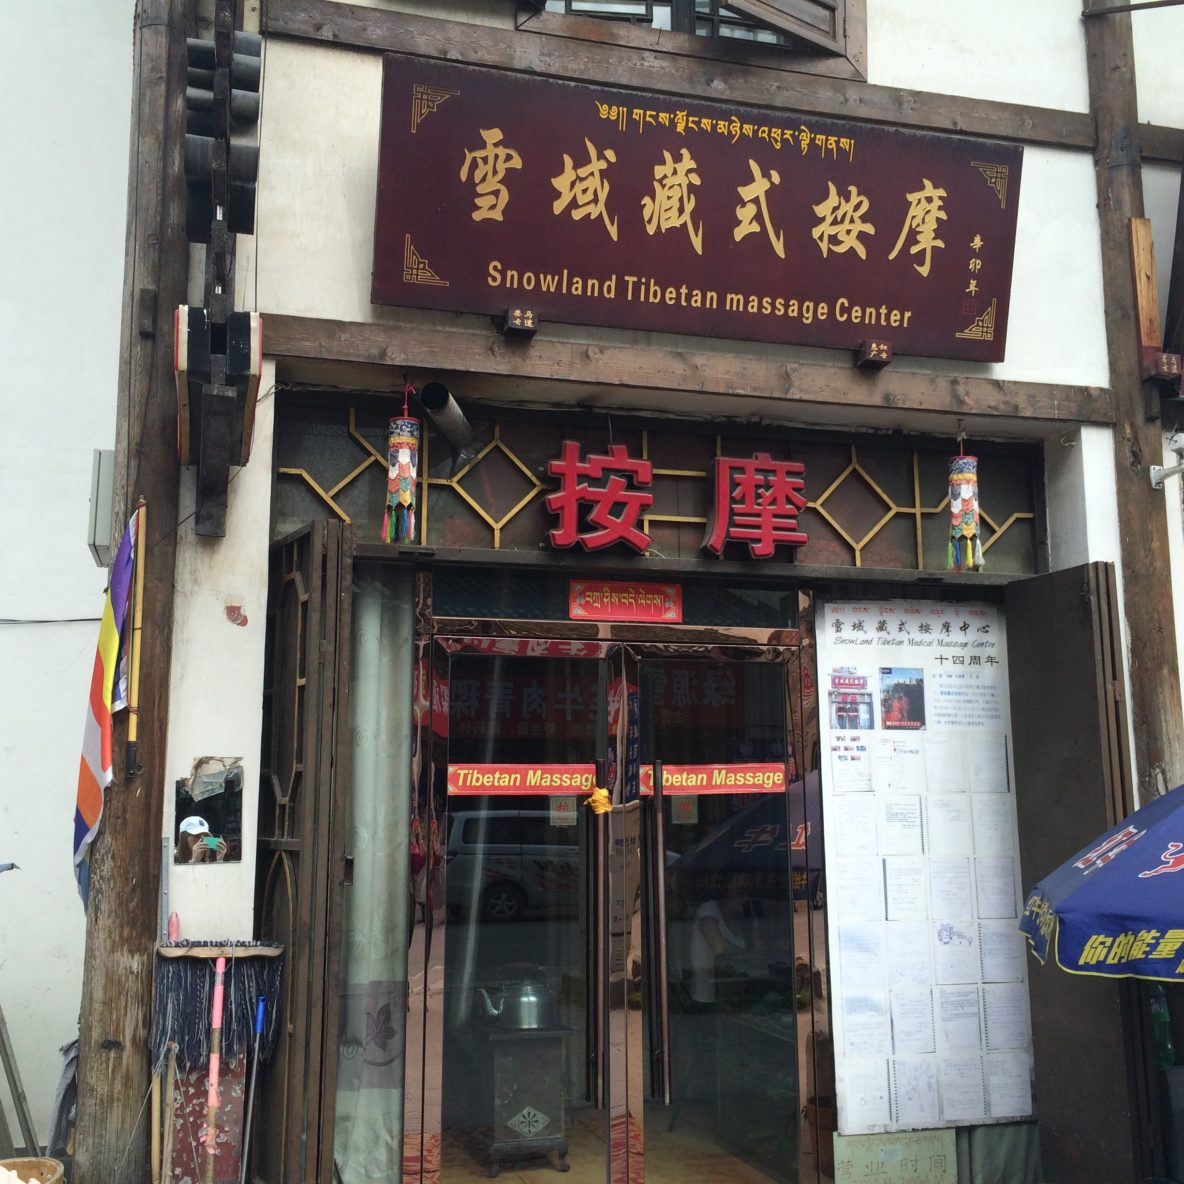 Entrance to Snow Land Tibetan Massage Center